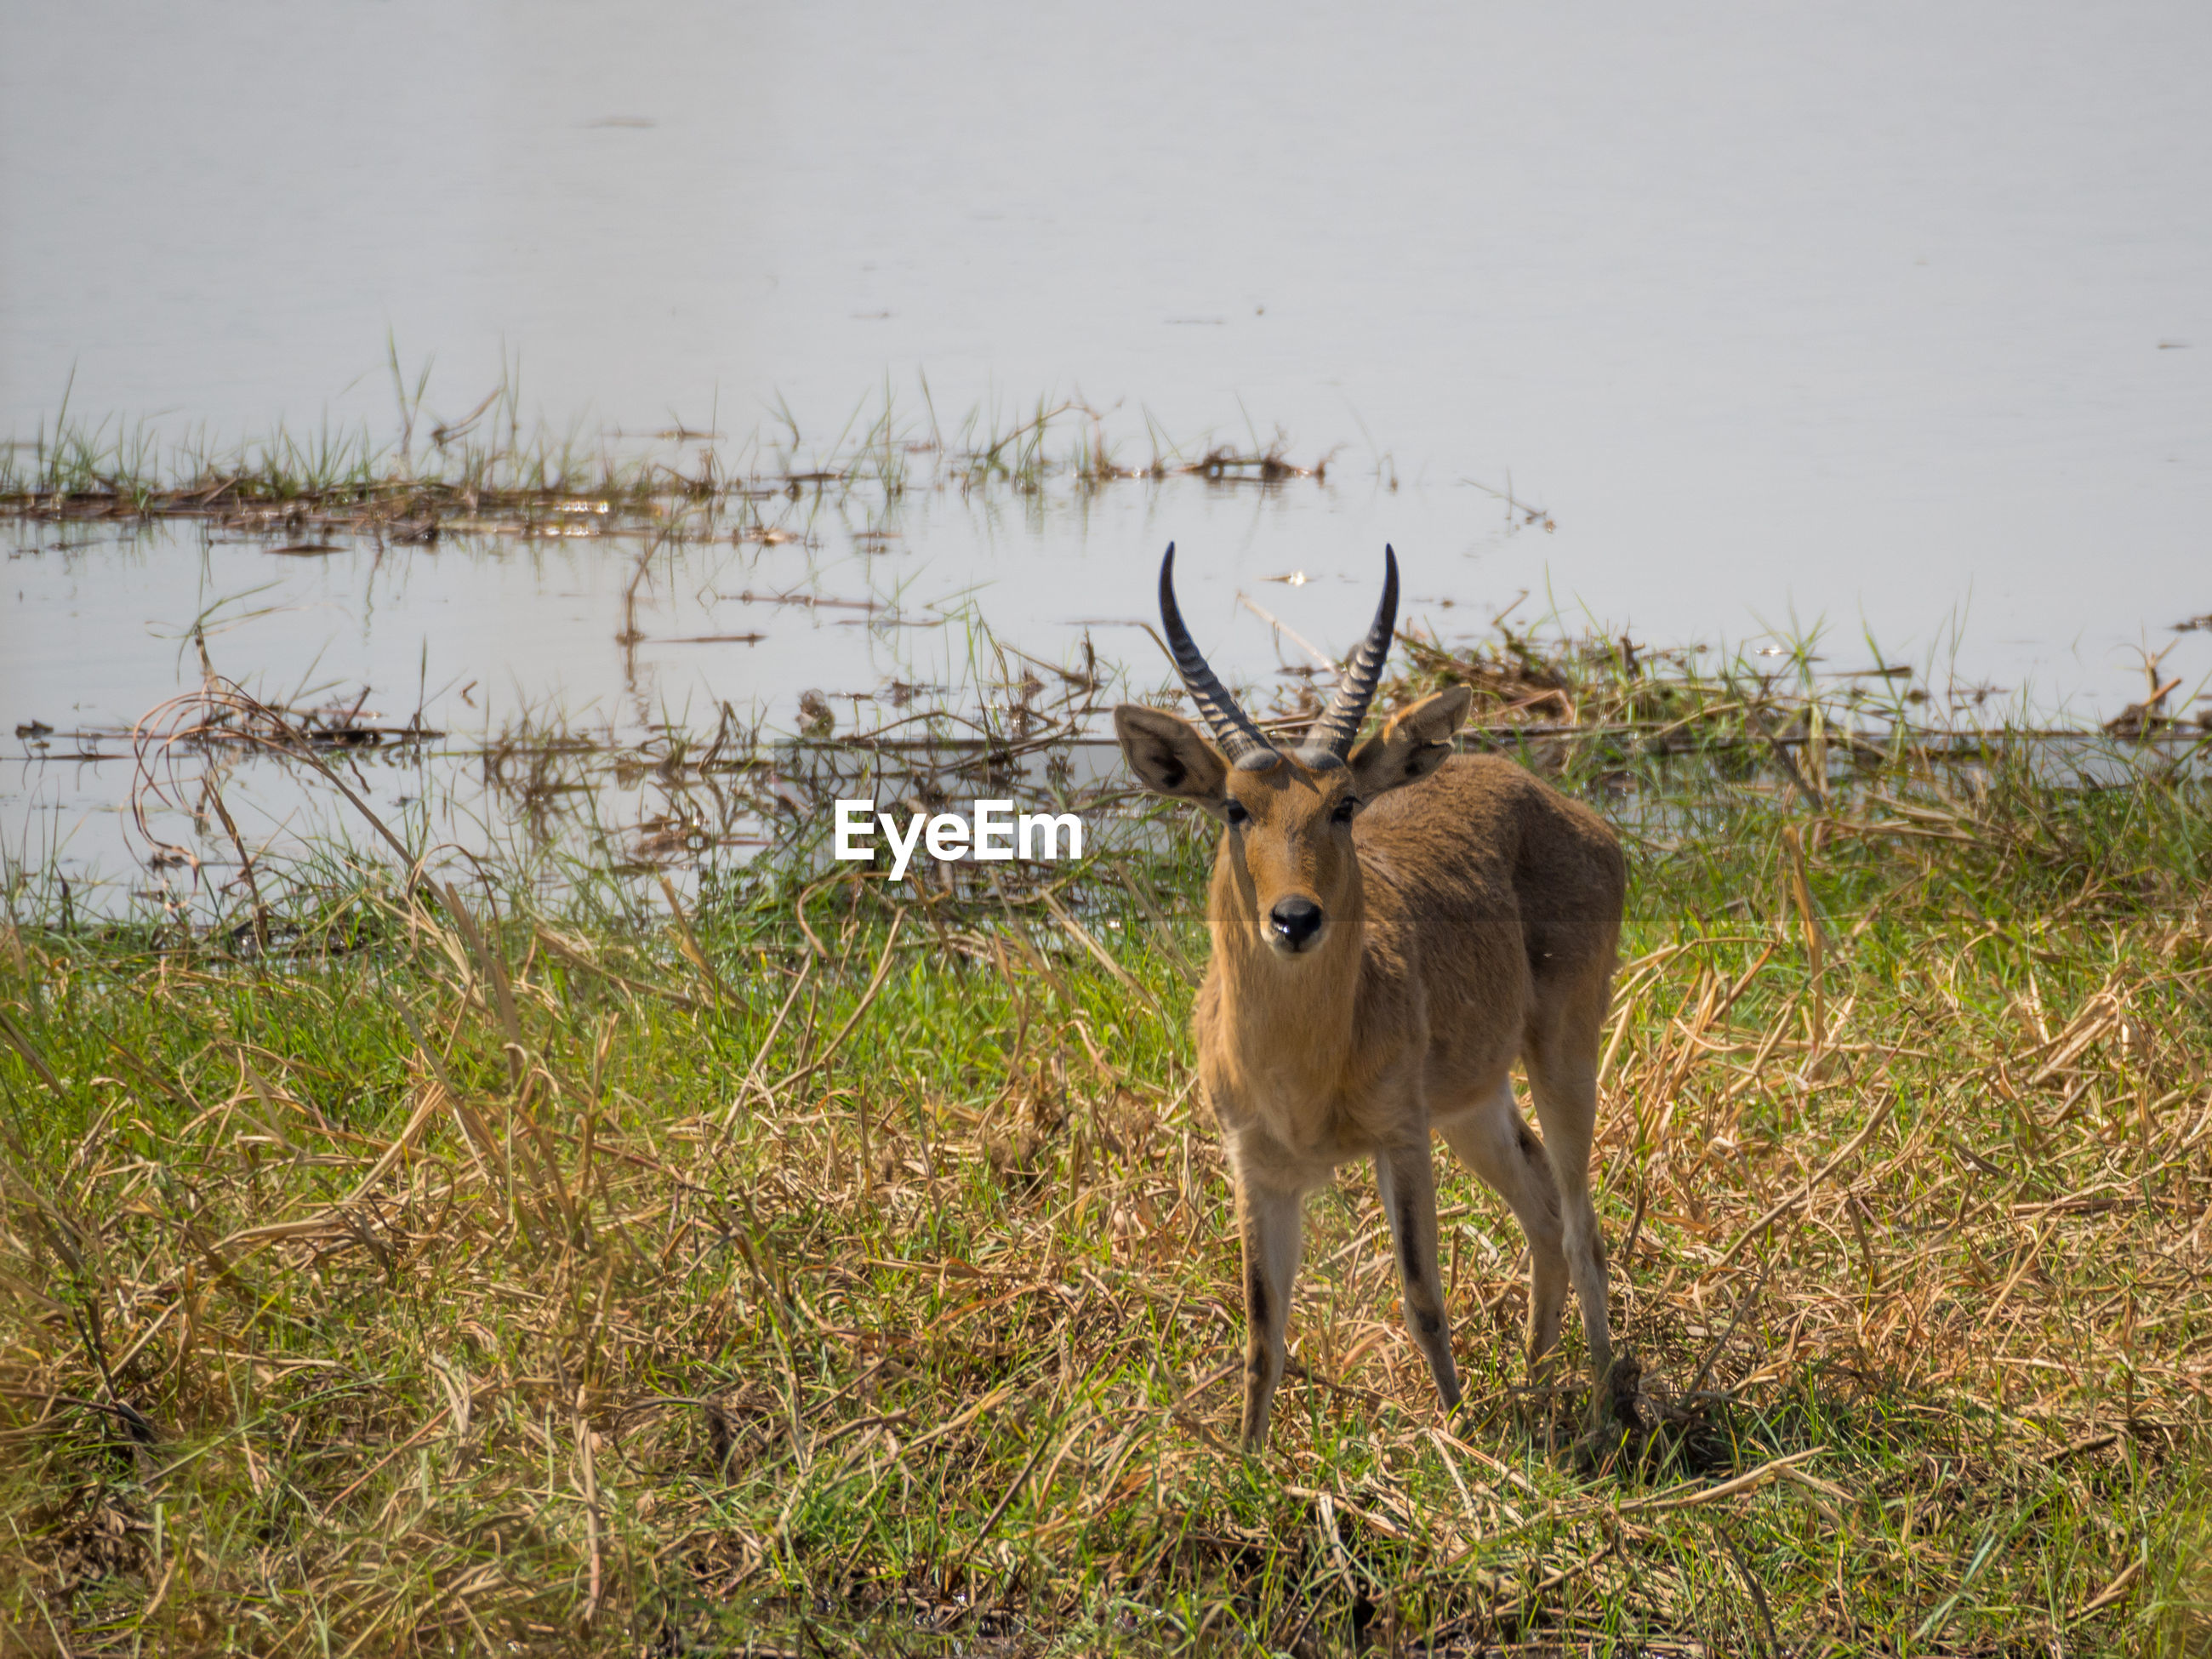 Water buck standing next to river in national park, namibia, africa